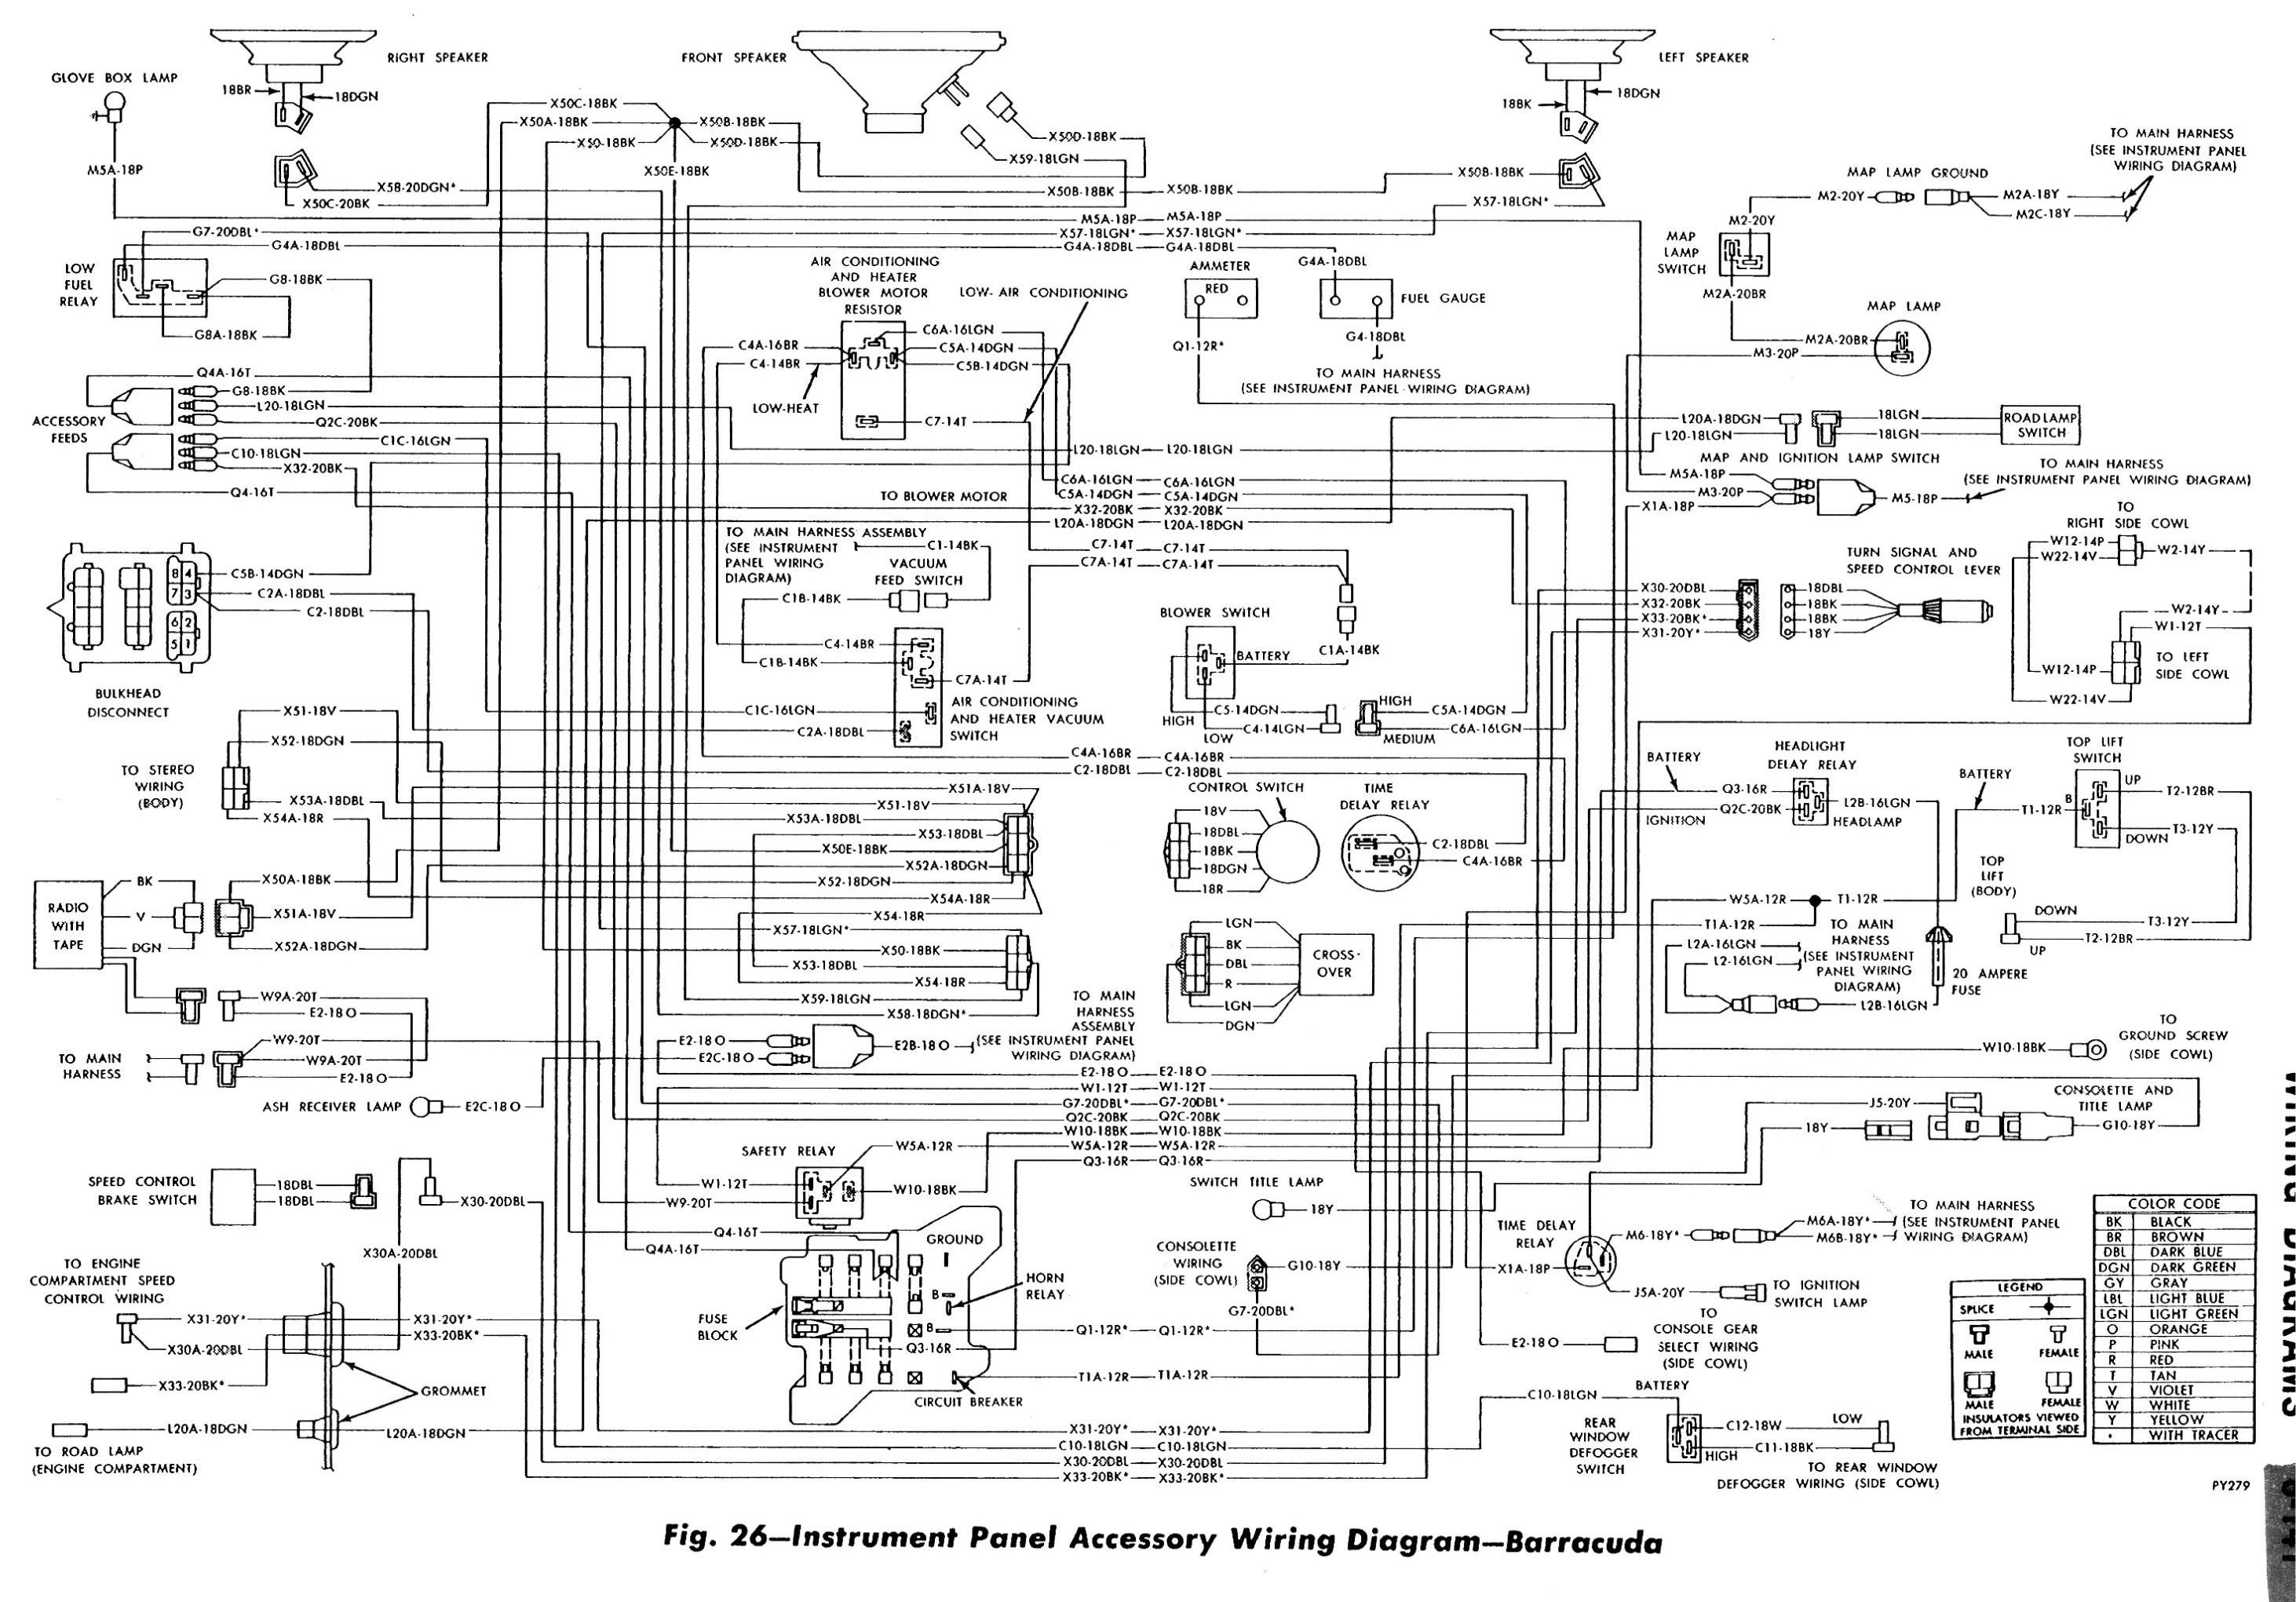 1974 Cuda Wiring Diagram Data 1970 Pontiac Moreover Engine Aar